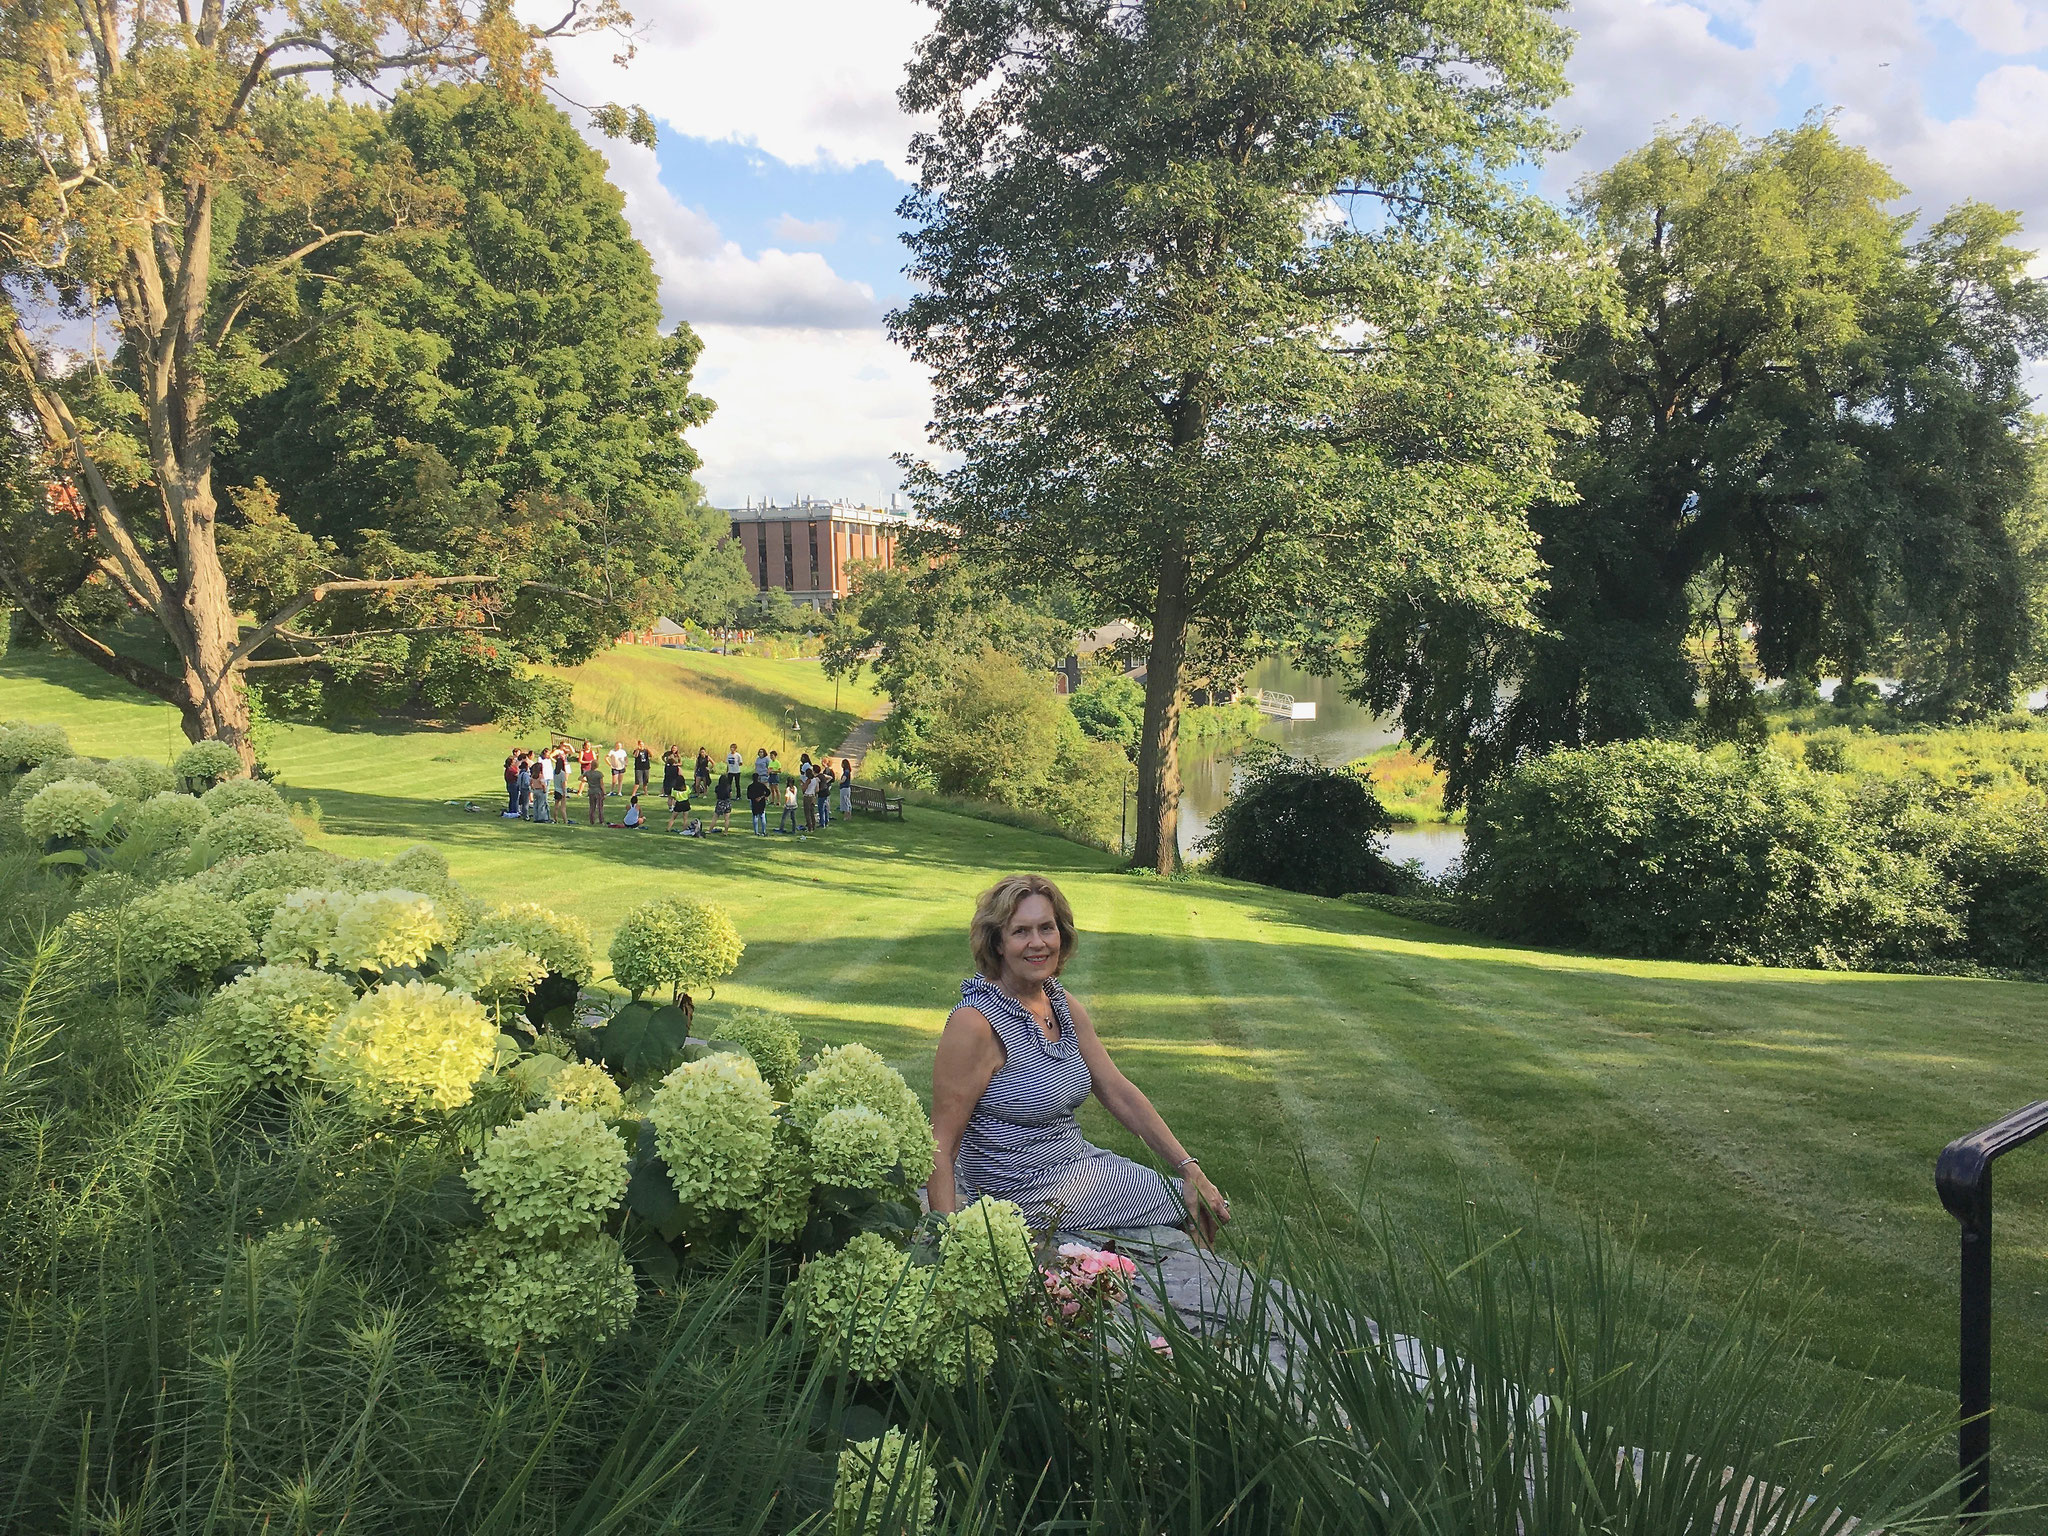 Lorraine on the Smith College campus, Aug. 30, 2019